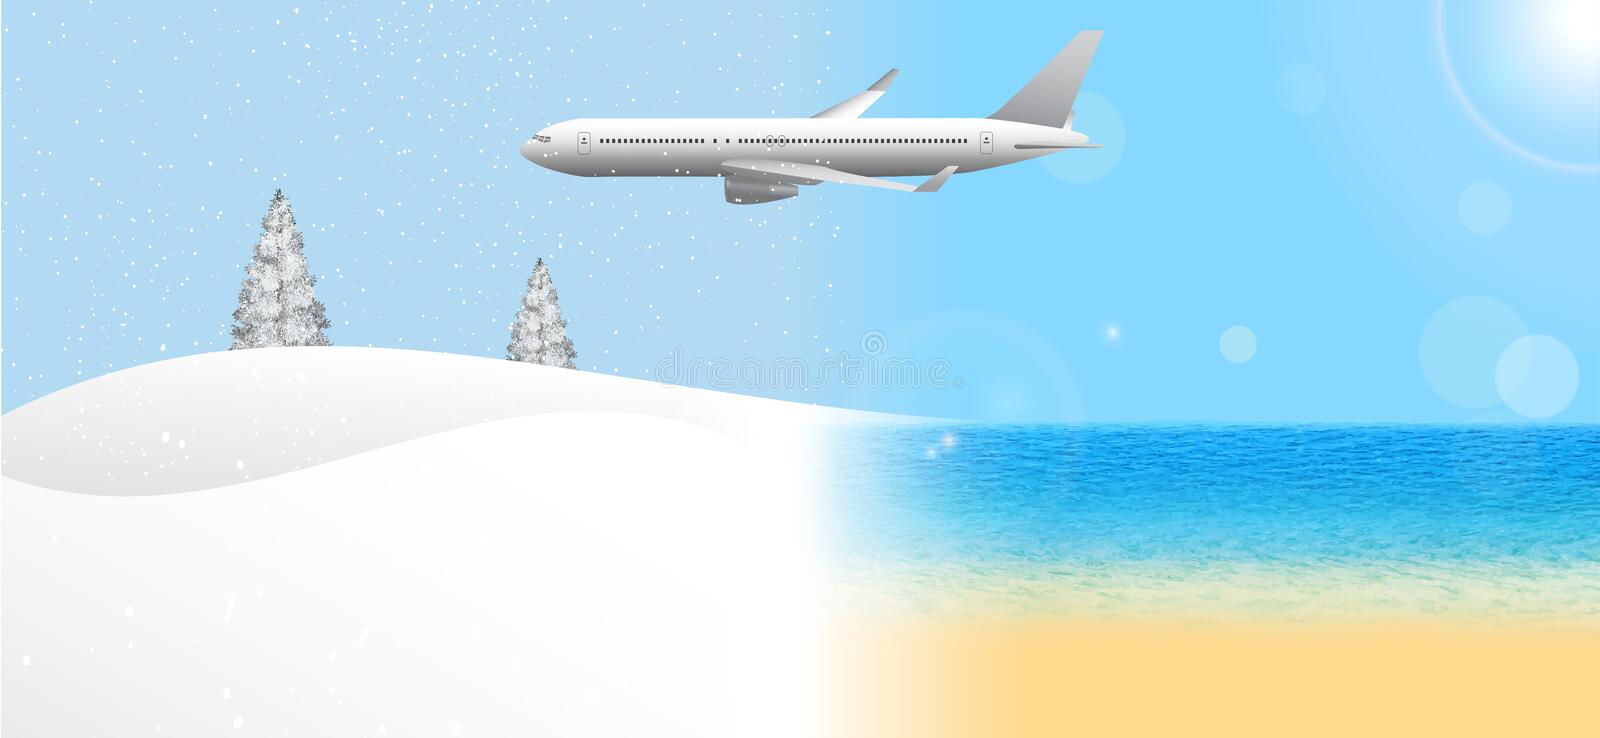 Passenger airplane flying from summer to winter. Travel from the warmer climate to the cooler. Banner concept, vector illustration vector illustration